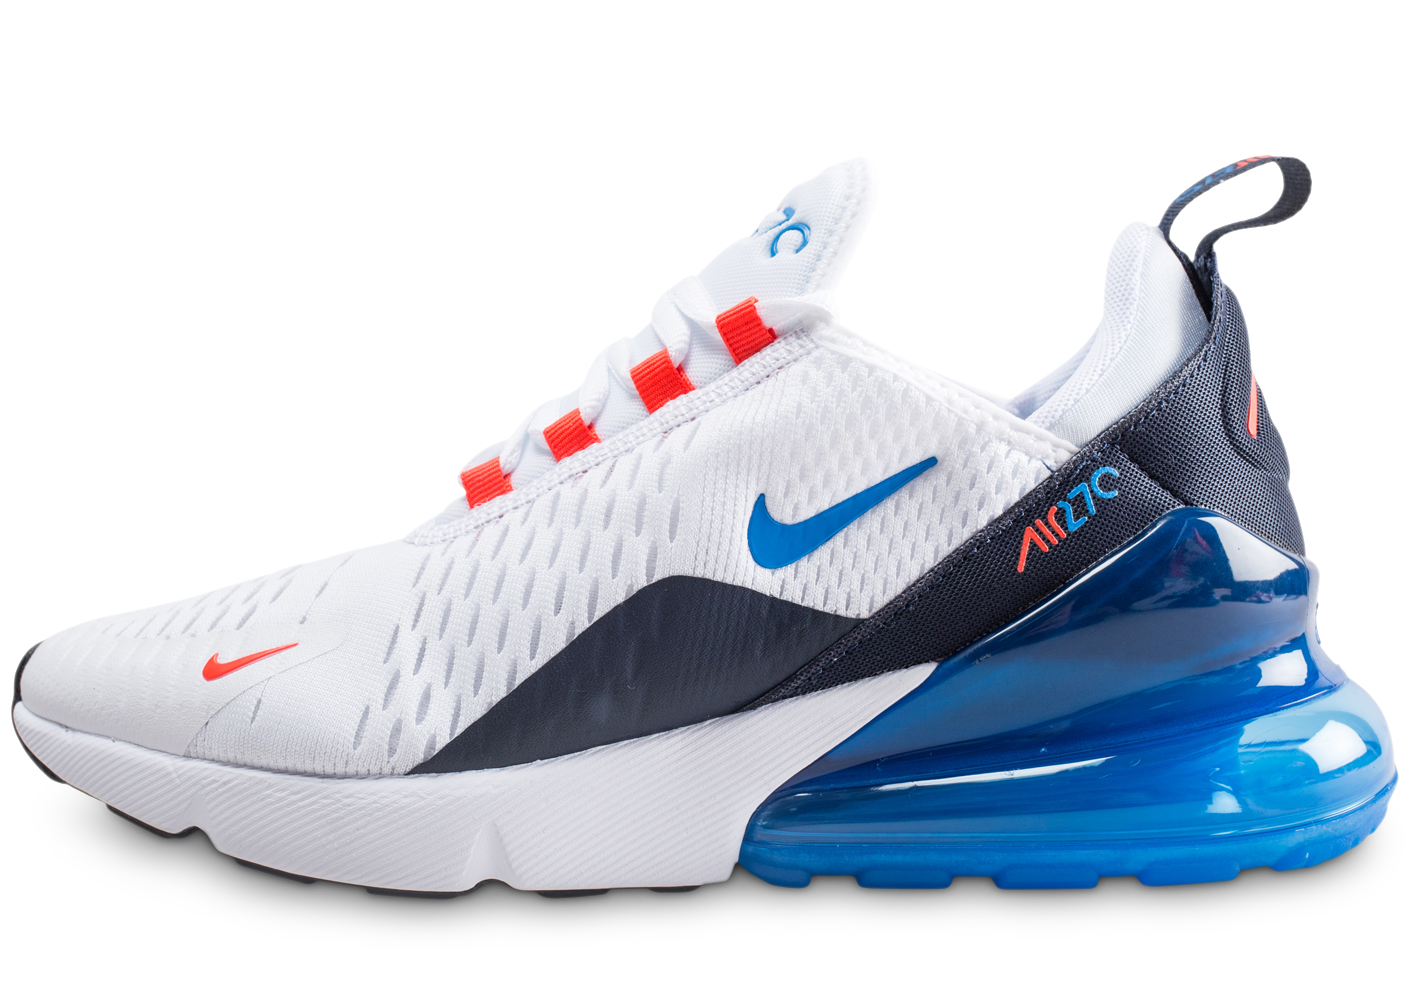 reputable site d90e4 cd539 Nike enfant air max 270 blanche et bleue junior.